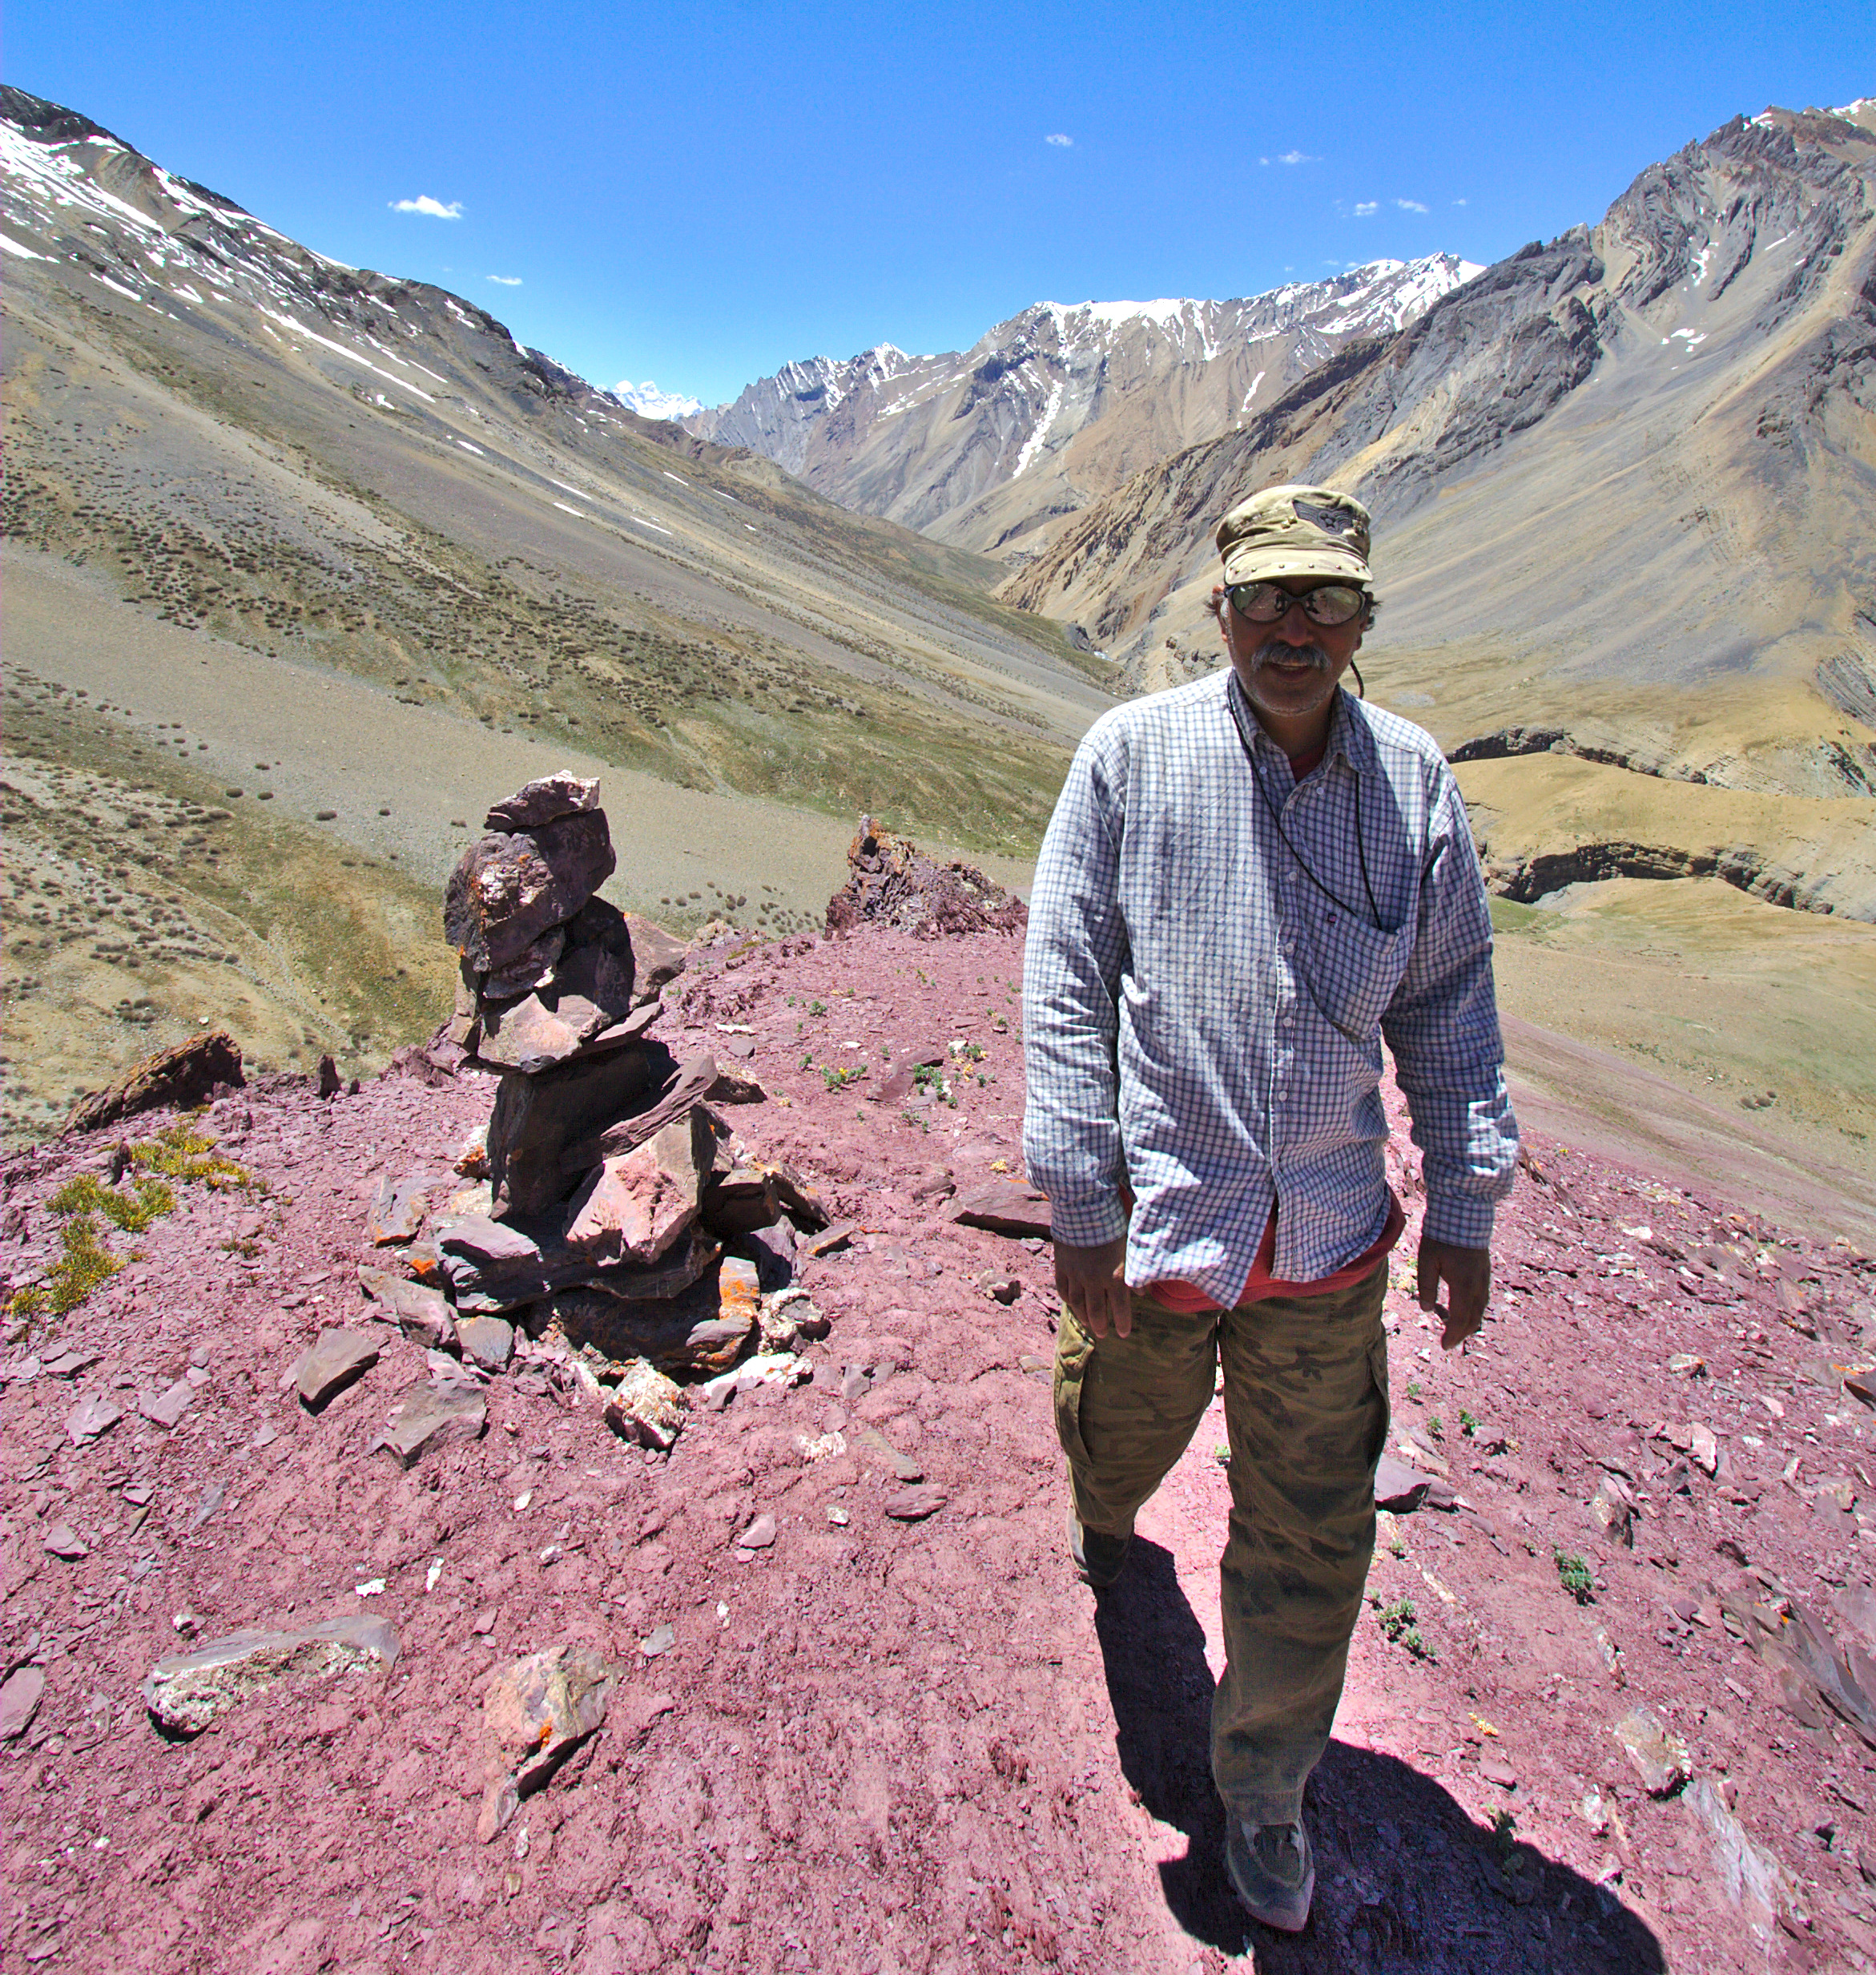 Snow leopard conservation: Reflections from the past